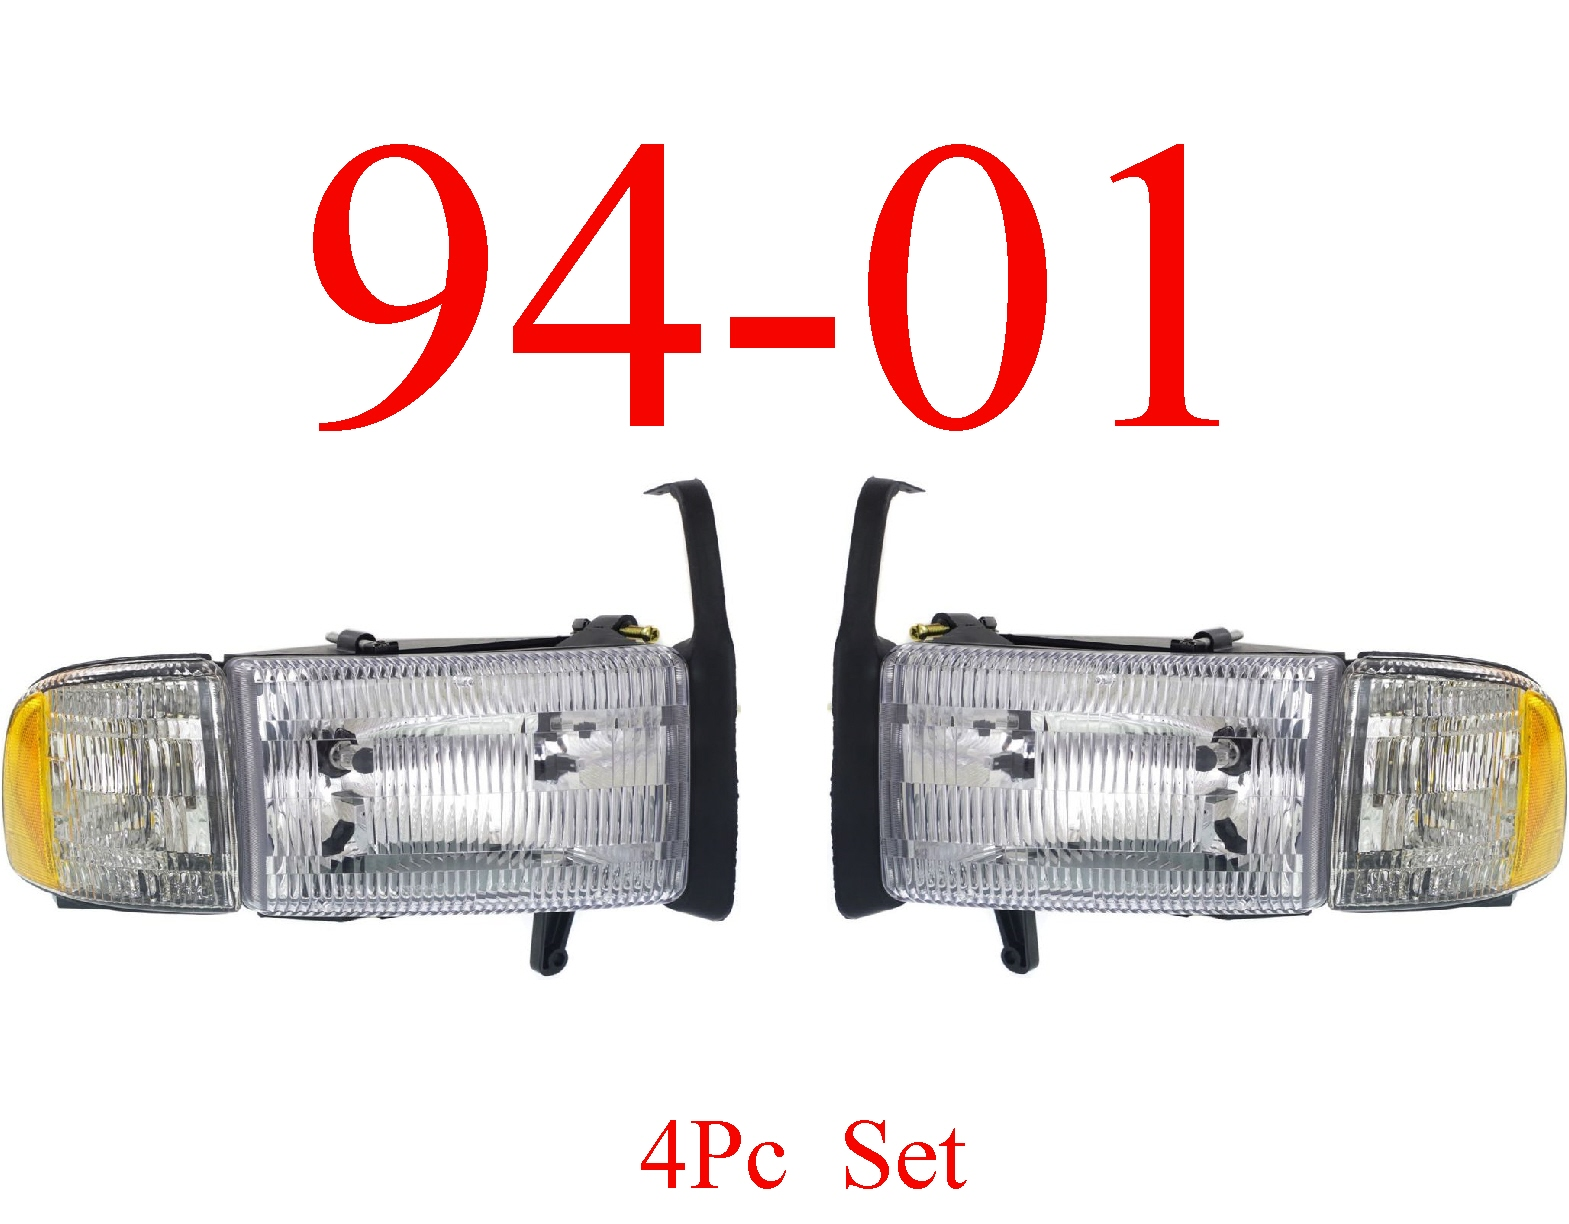 94-01 Dodge Ram Head Light Set